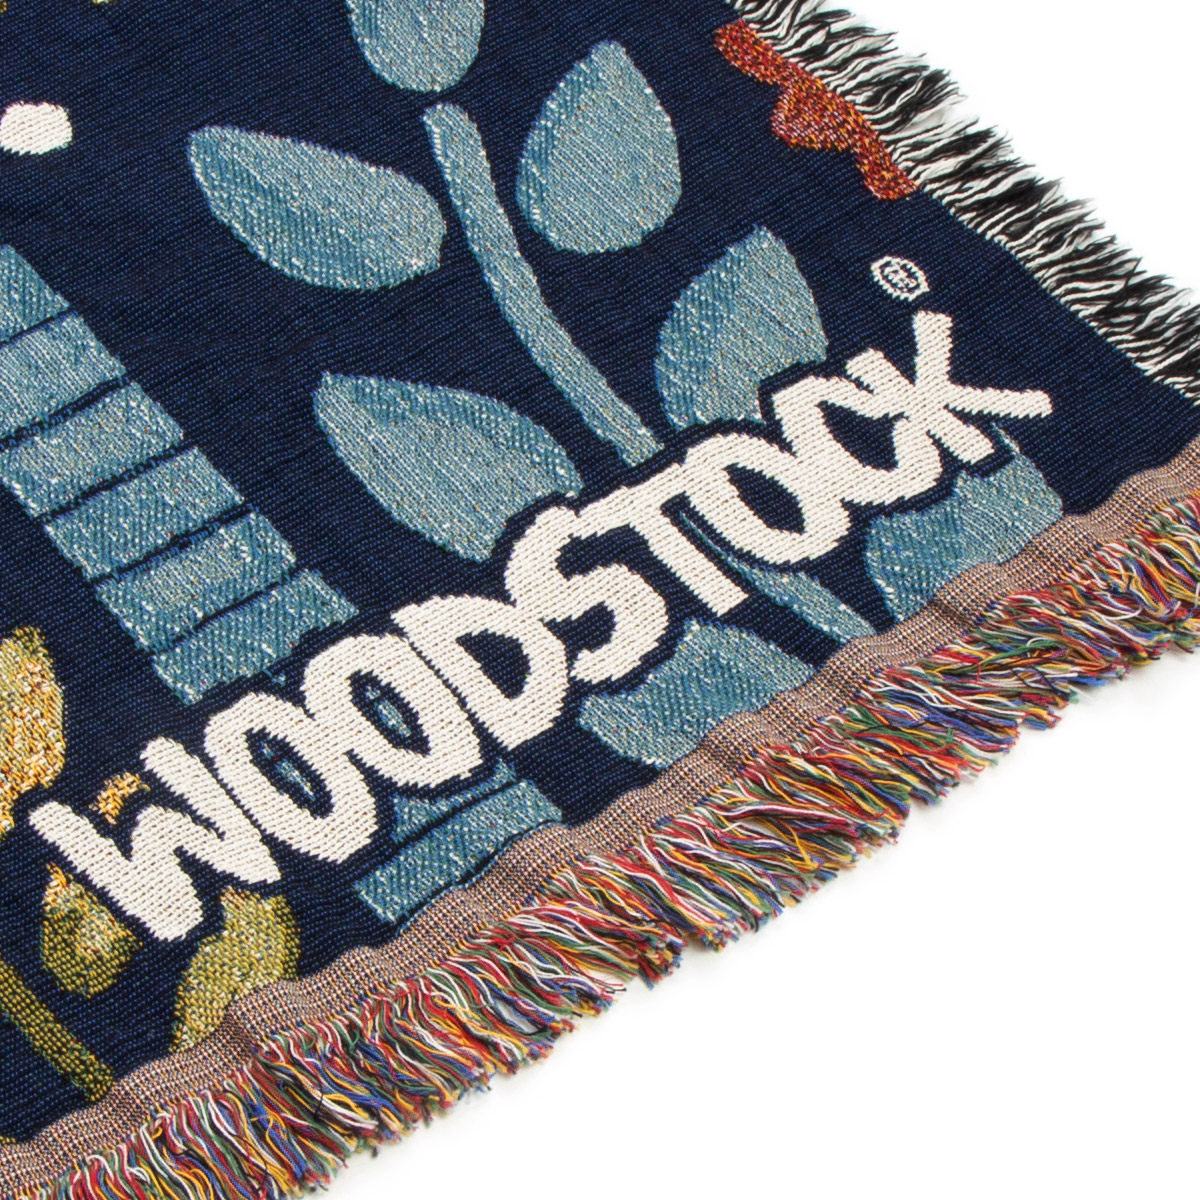 Woodstock Garden Throw Blanket